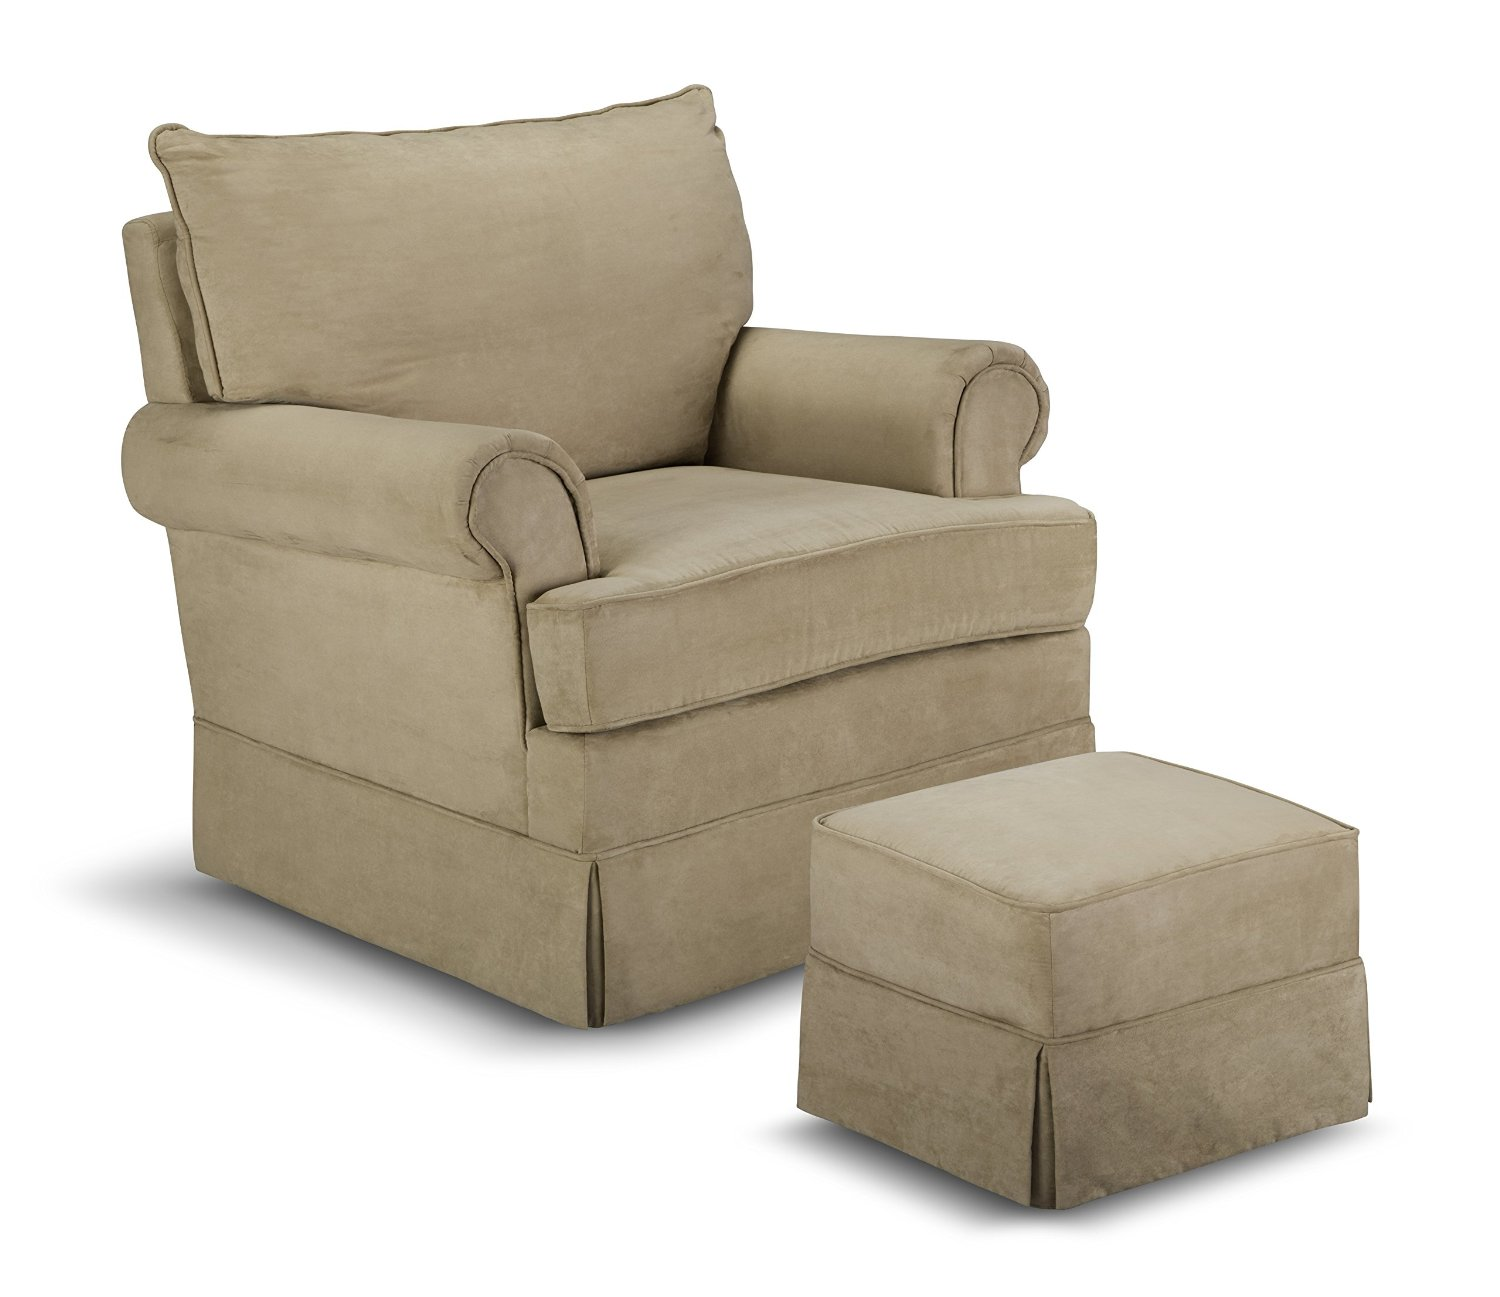 Upholstered Glider Chair Thomasville Kids Grand Royale Upholstered Swivel Glider